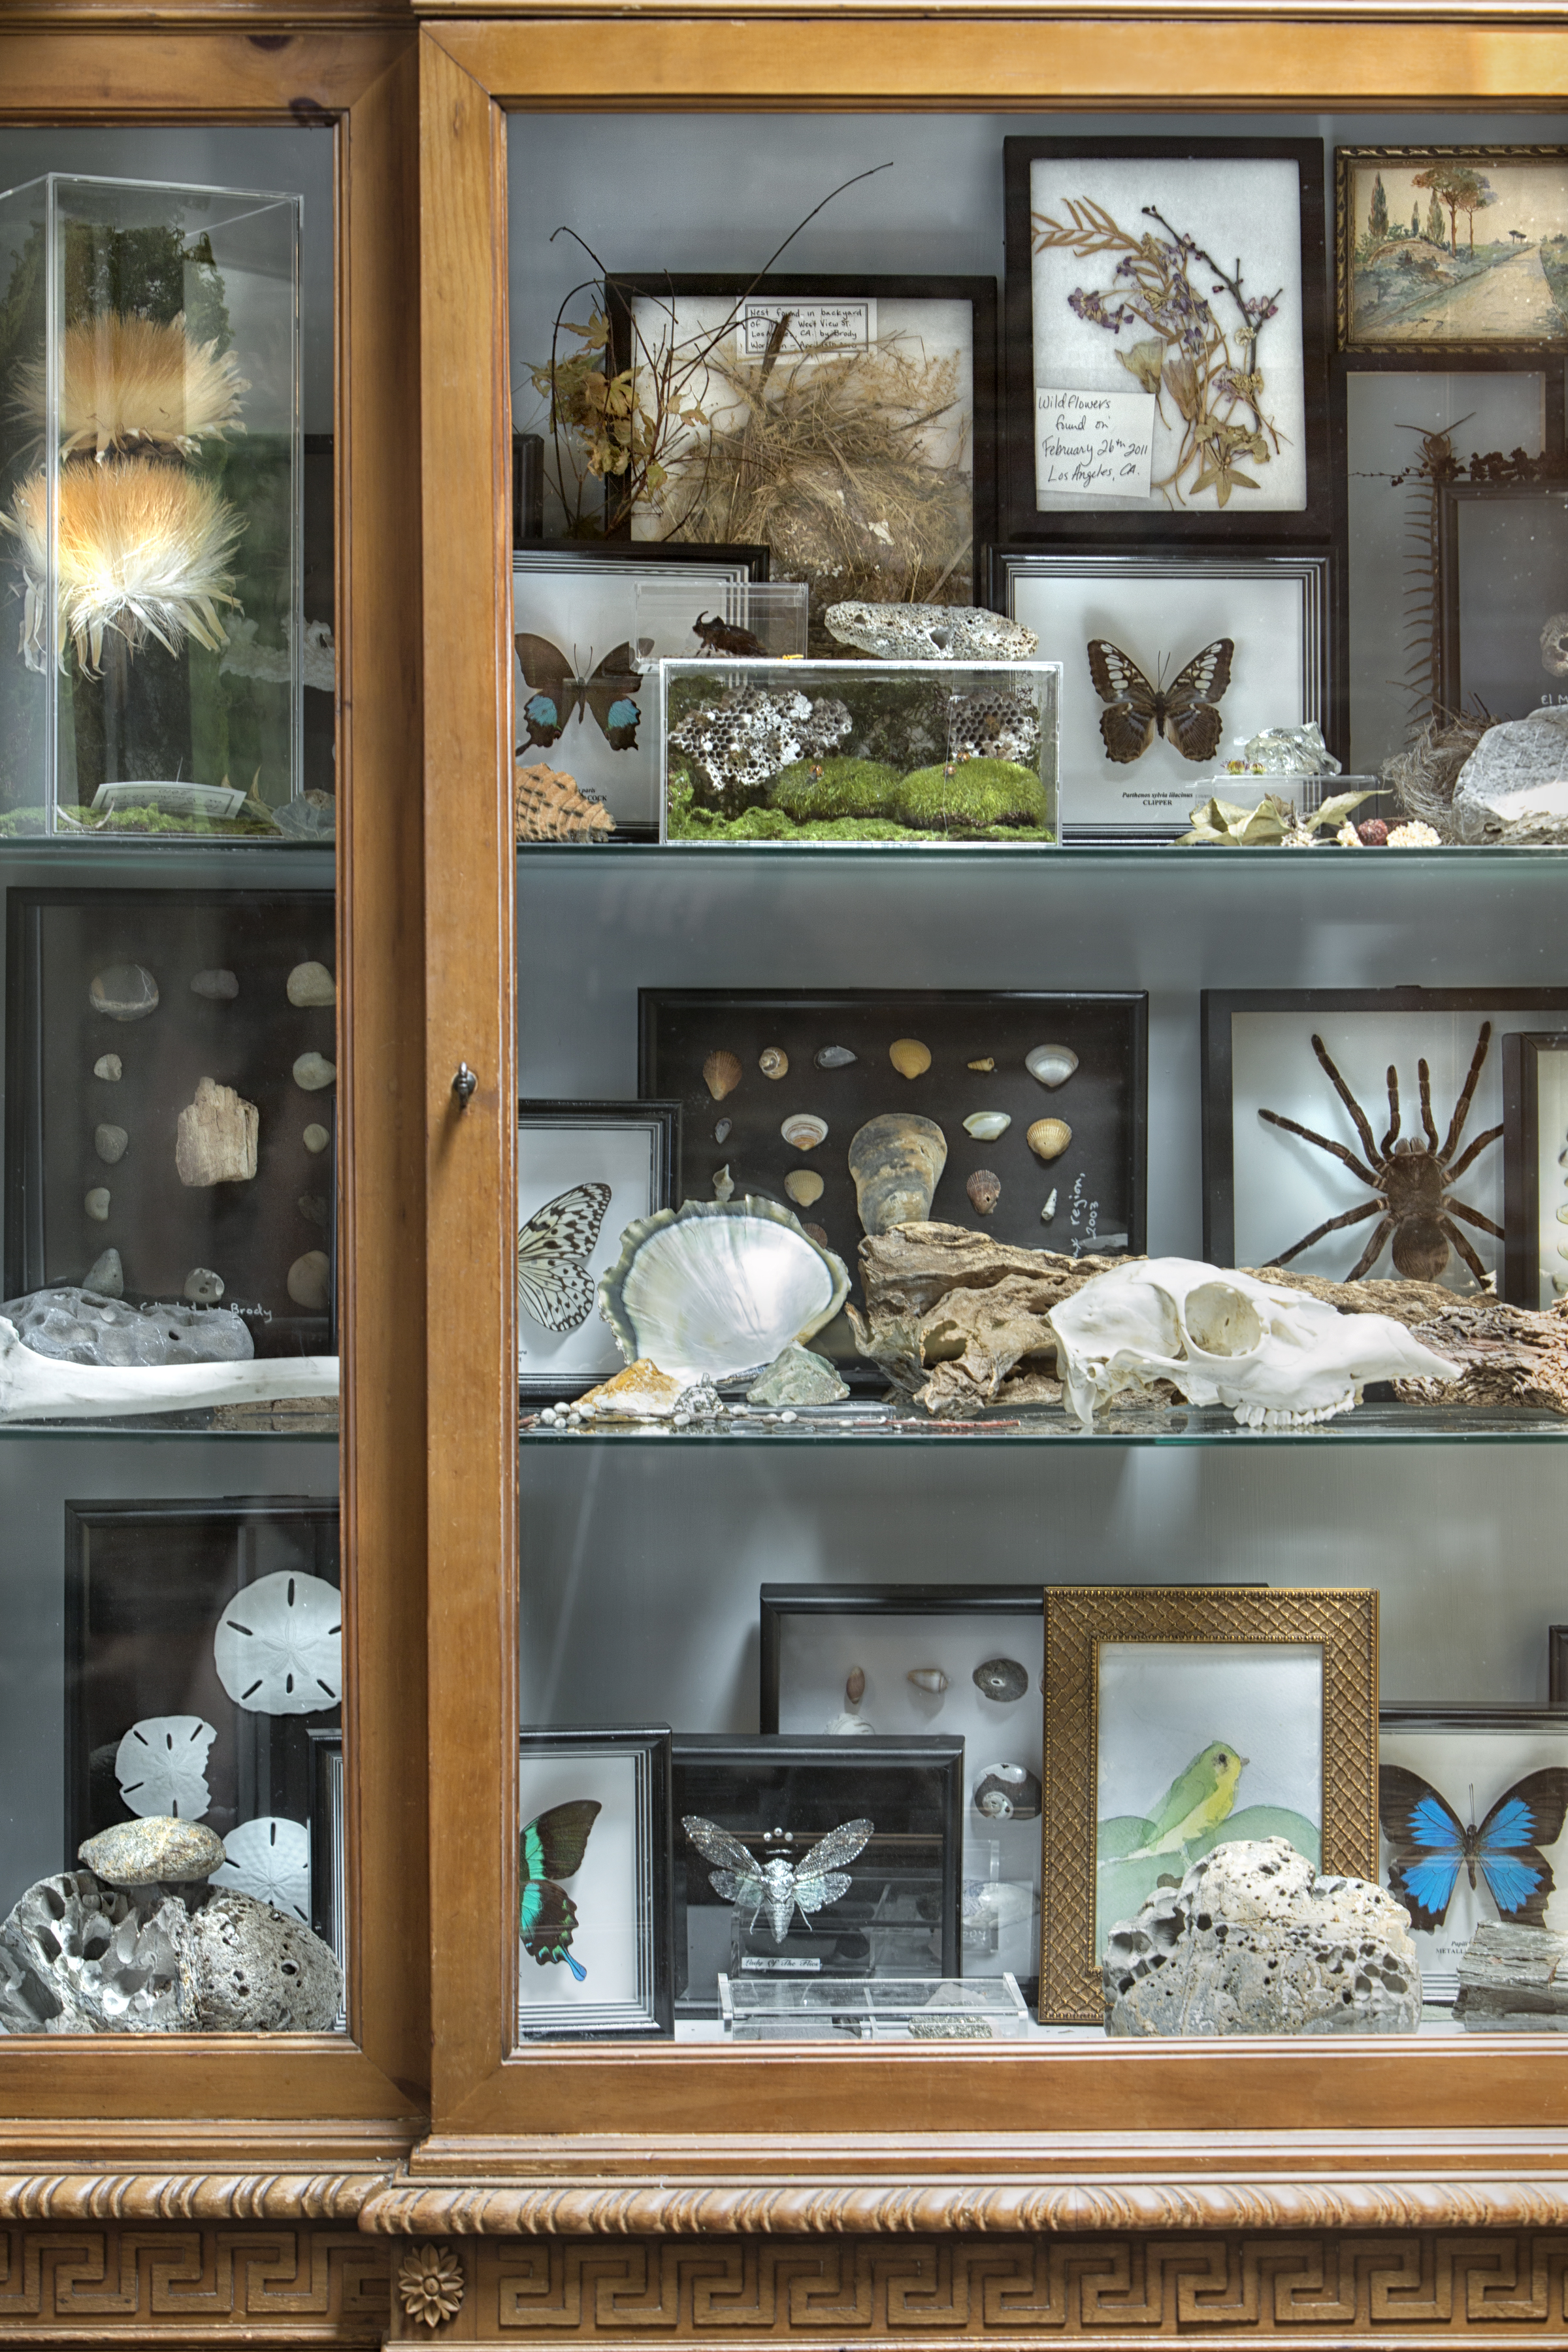 A collection, like this one of various natural curiosities, is not only fascinating and colorful, but also a cool learning tool for Michelle's children.